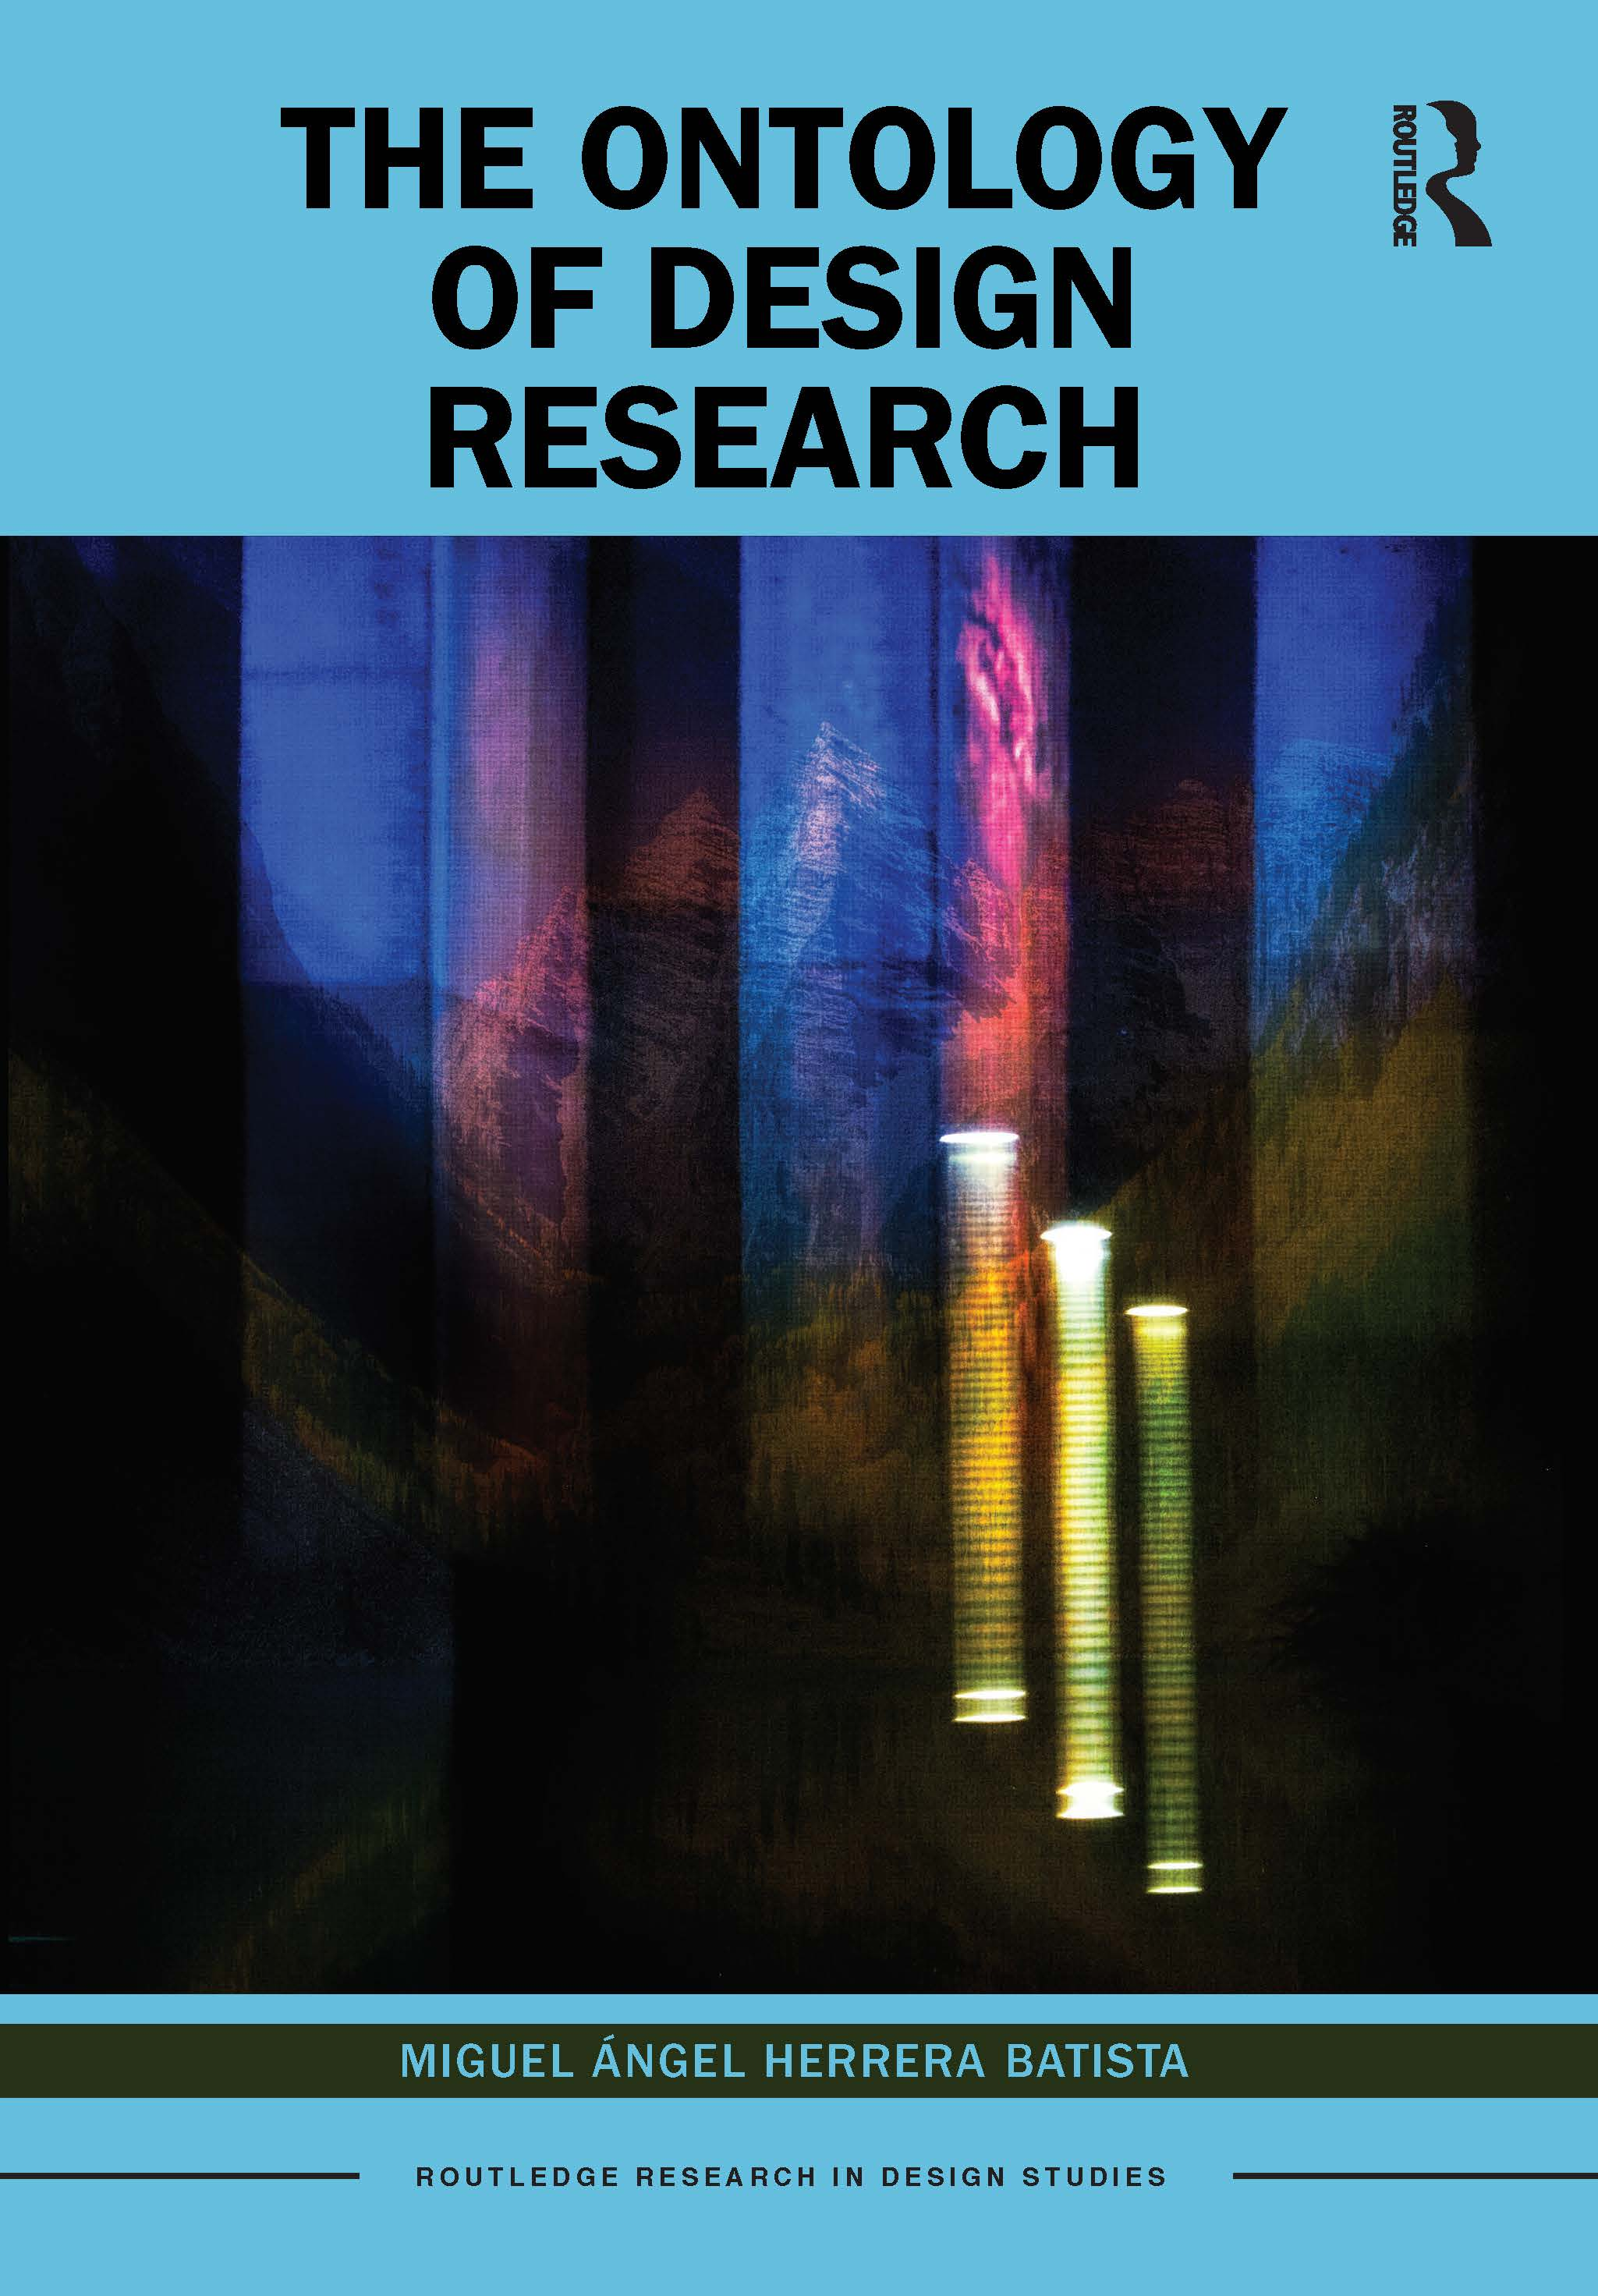 The Ontology of Design Research